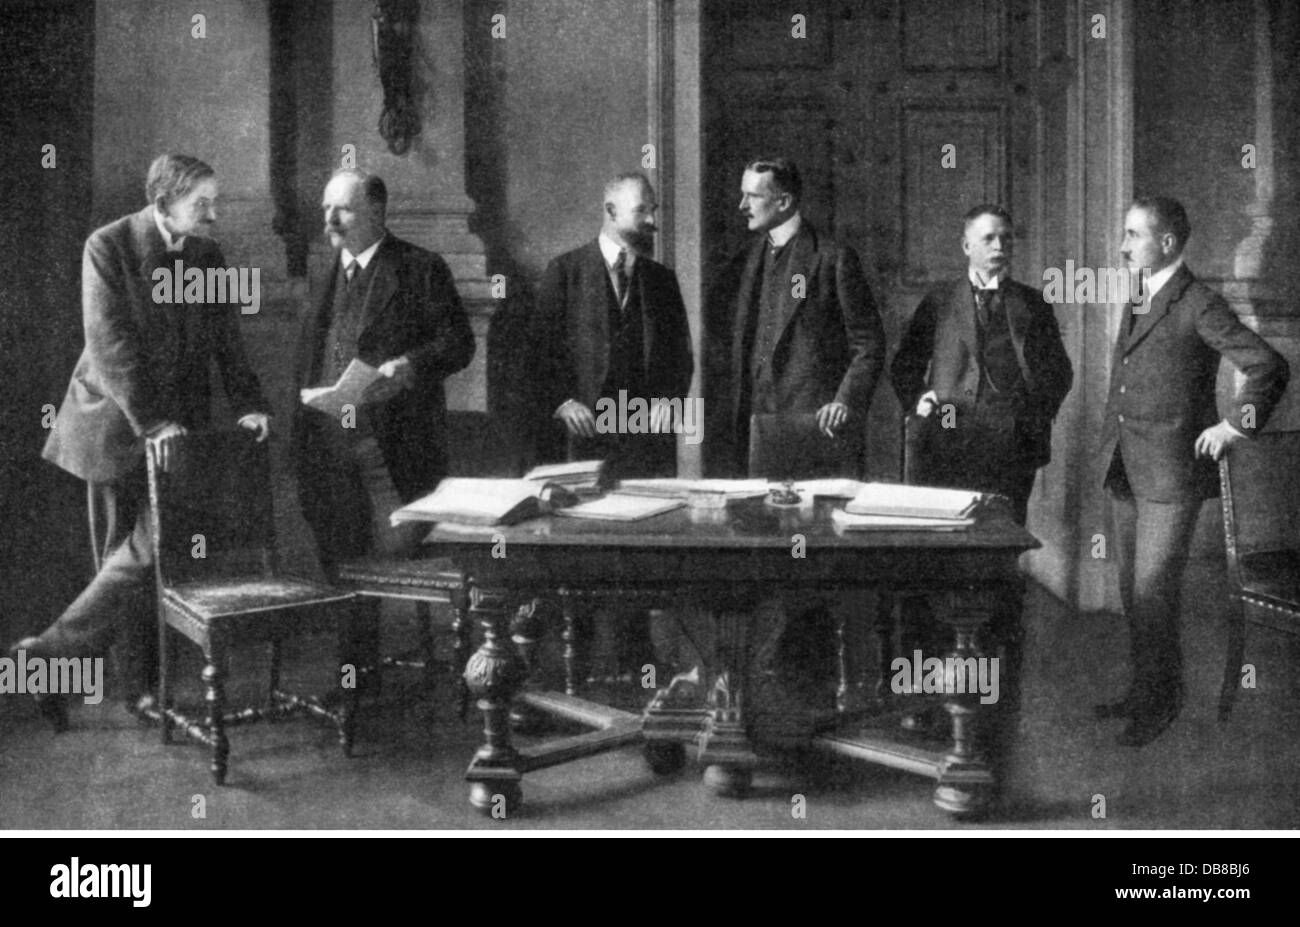 the treaty of versailles as one of the reasons behind germanys economic crisis and the success of hi The german economy c1919-1929 economic effects of the treaty of versailles with the economy in ruins, and the allies claiming reparations and taking control of industry, goods became difficult to obtain and therefore very expensive.